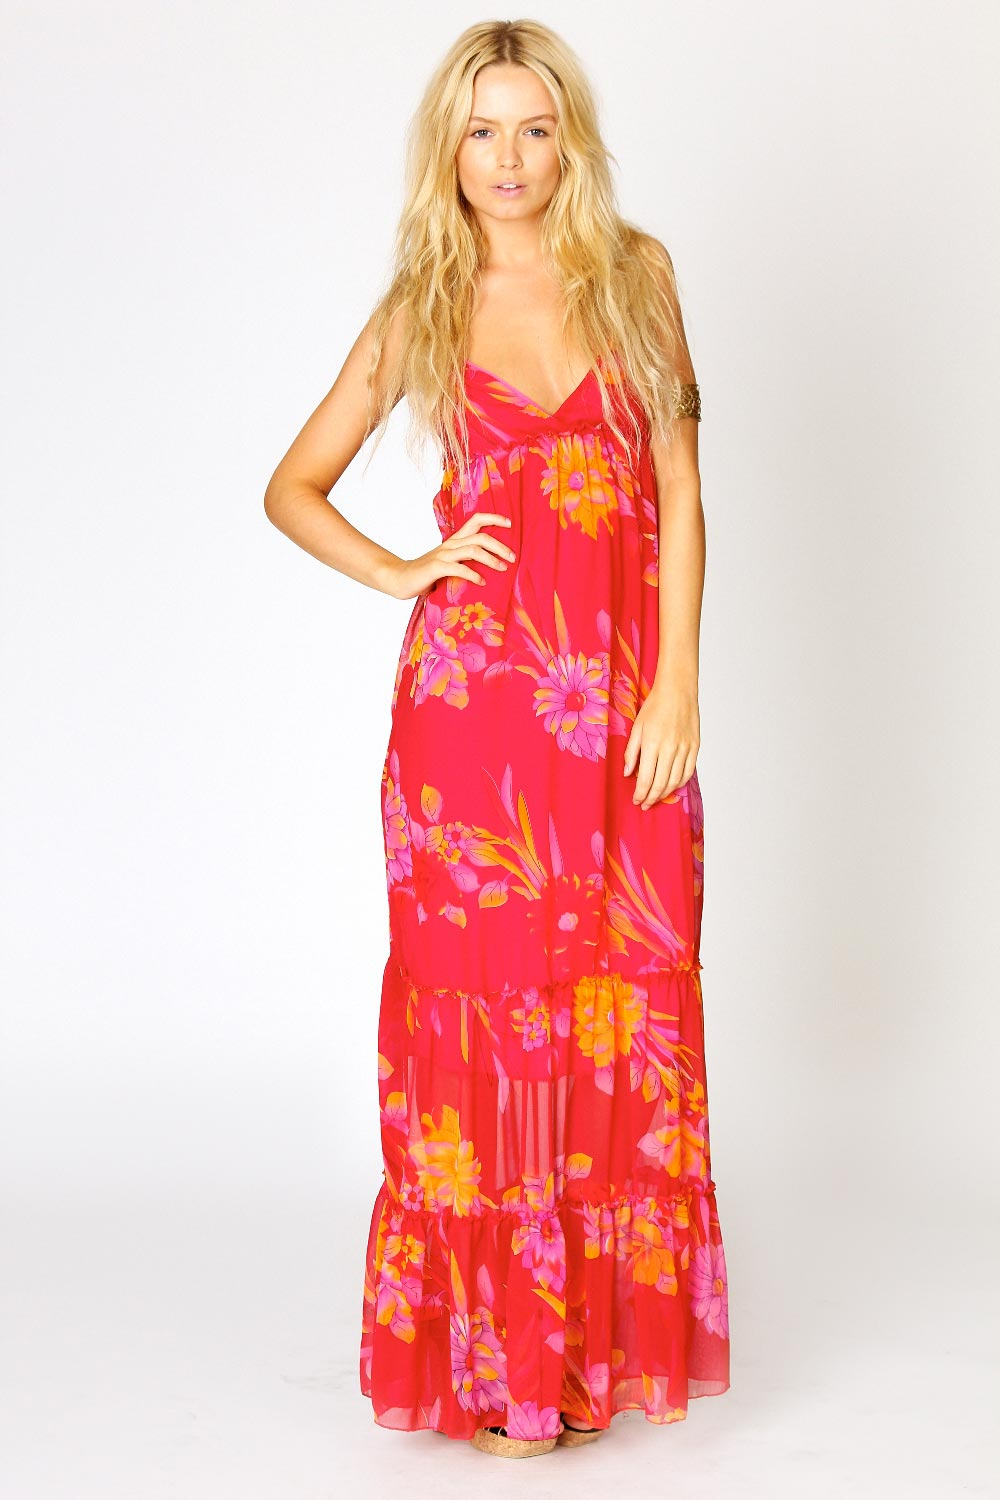 BooHoo-Cassie-Bold-Floral-Chiffon-Maxi-Dress-in-Red